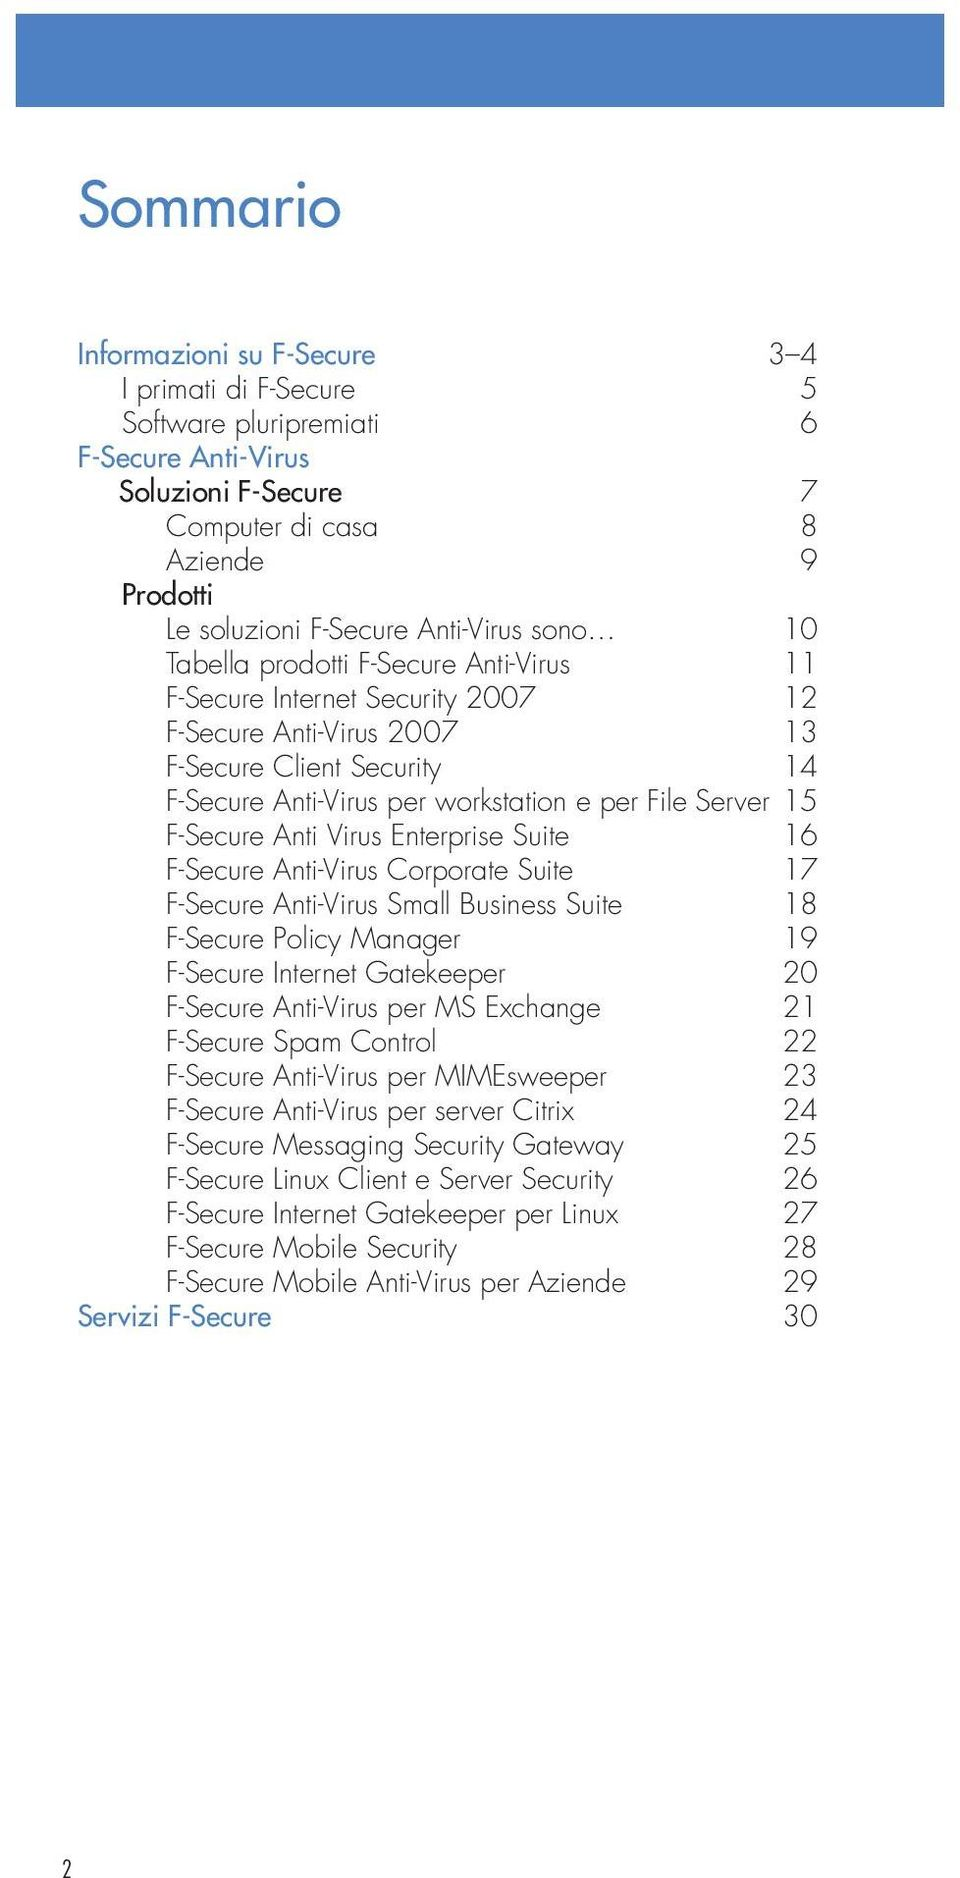 F-Secure Anti Virus Enterprise Suite 16 F-Secure Anti-Virus Corporate Suite 17 F-Secure Anti-Virus Small Business Suite 18 F-Secure Policy Manager 19 F-Secure Internet Gatekeeper 20 F-Secure